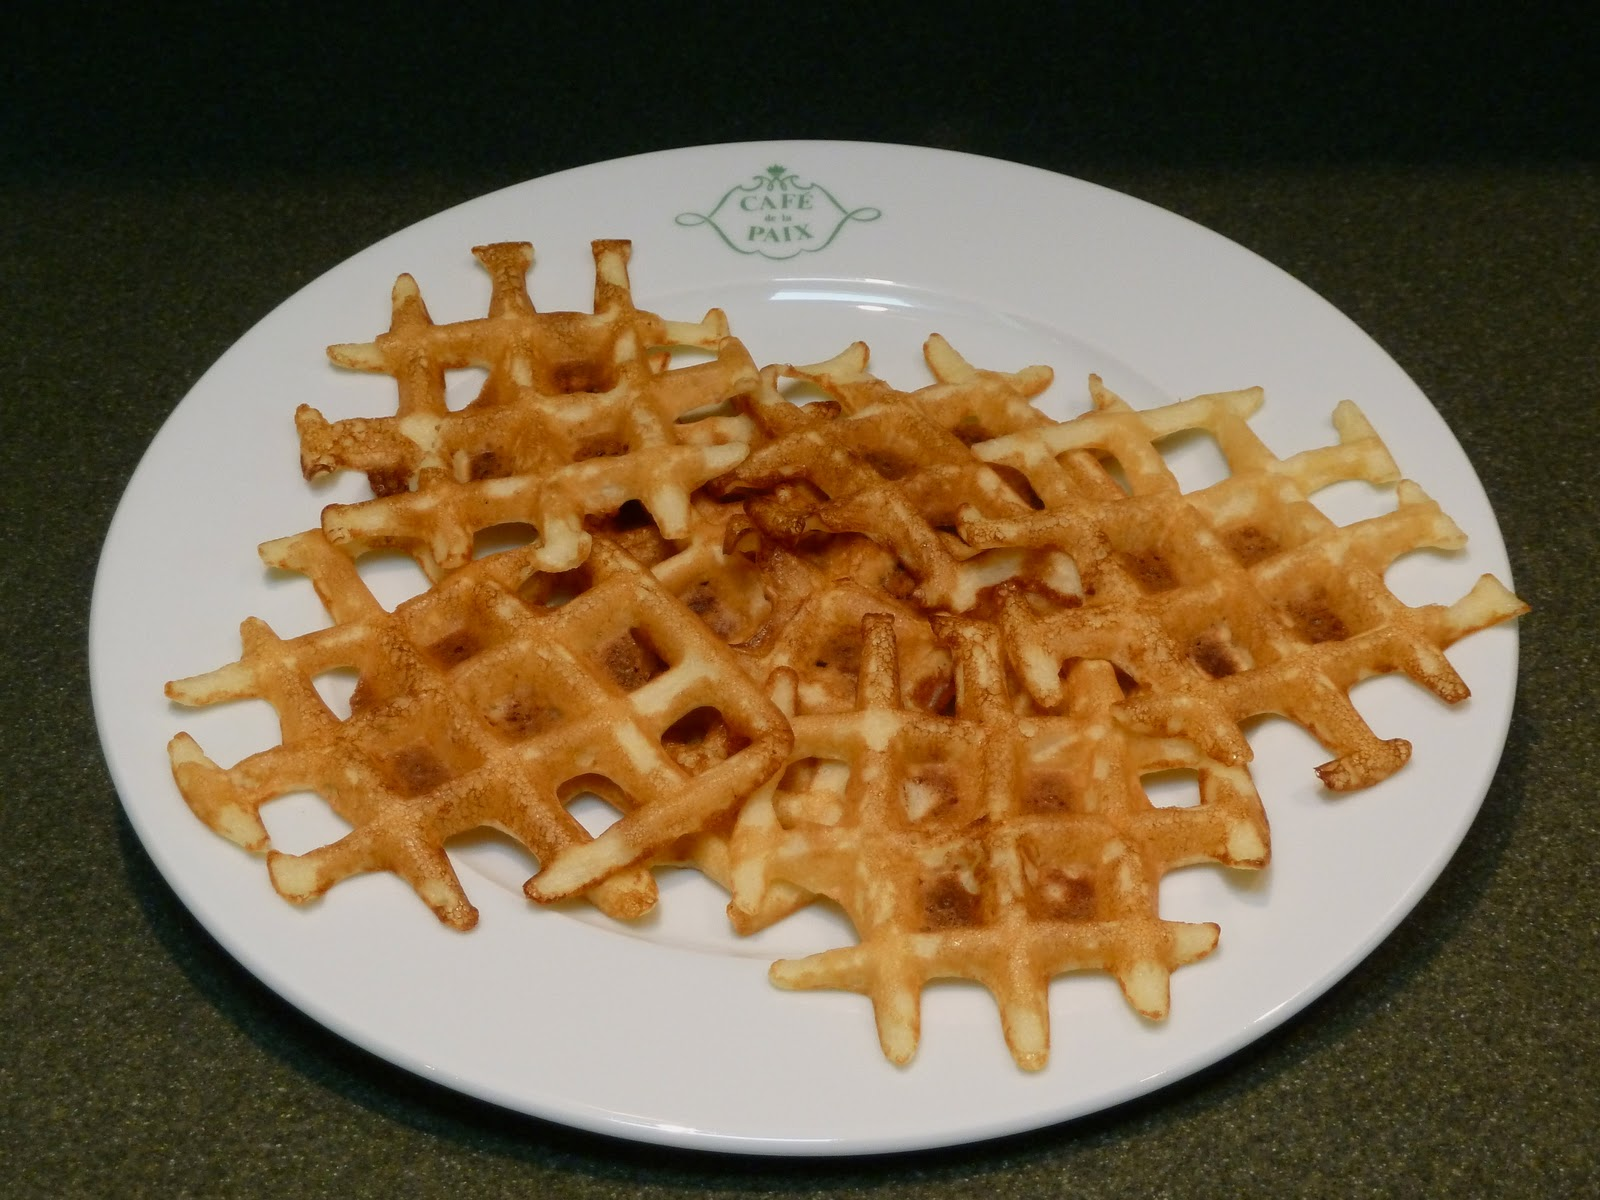 Homesick Pie: Potato Waffles with Crème Fraiche